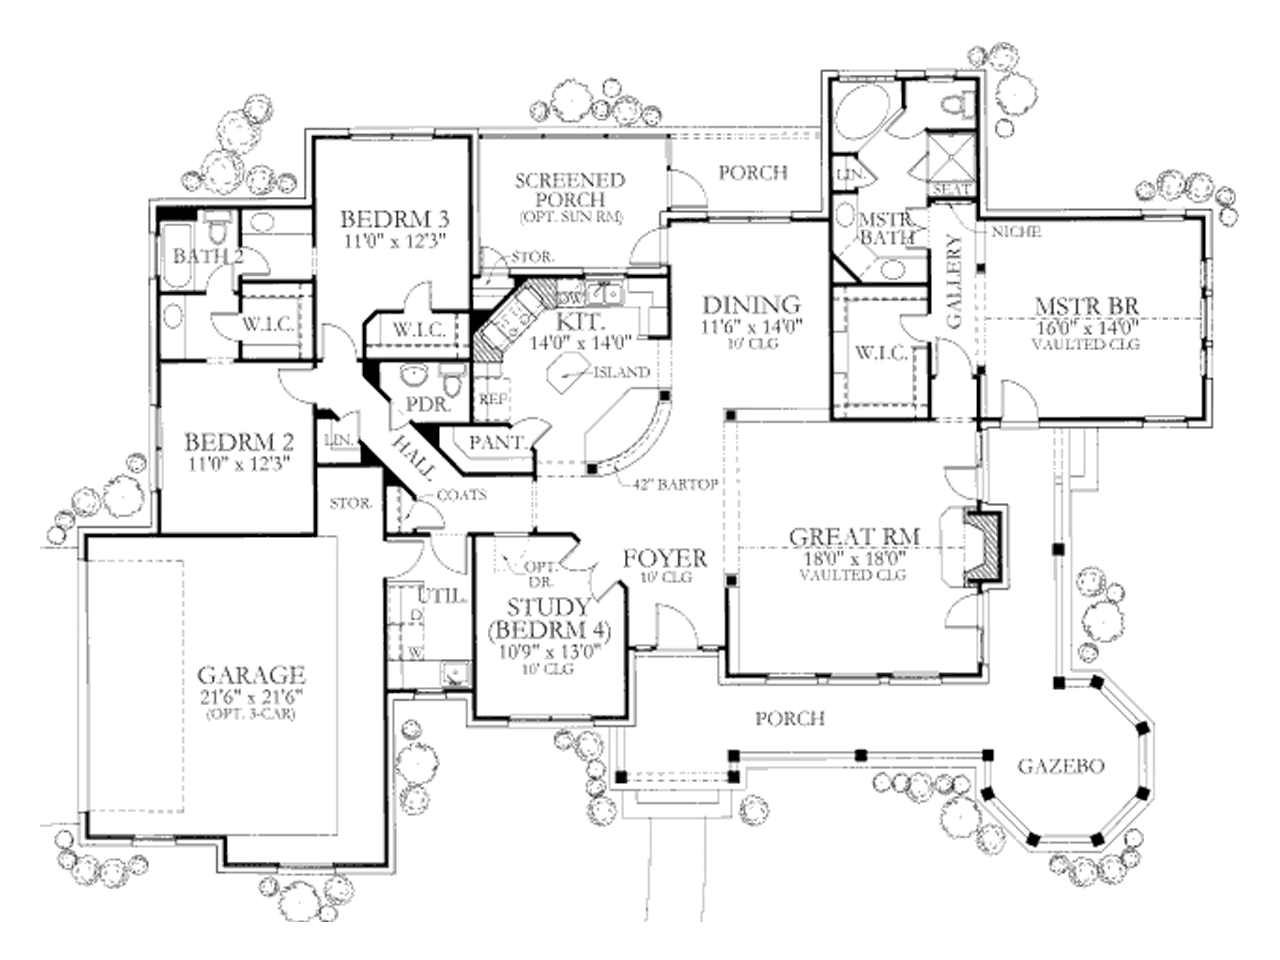 Country Style House Plan 4 Beds Baths 2184 Sq Ft